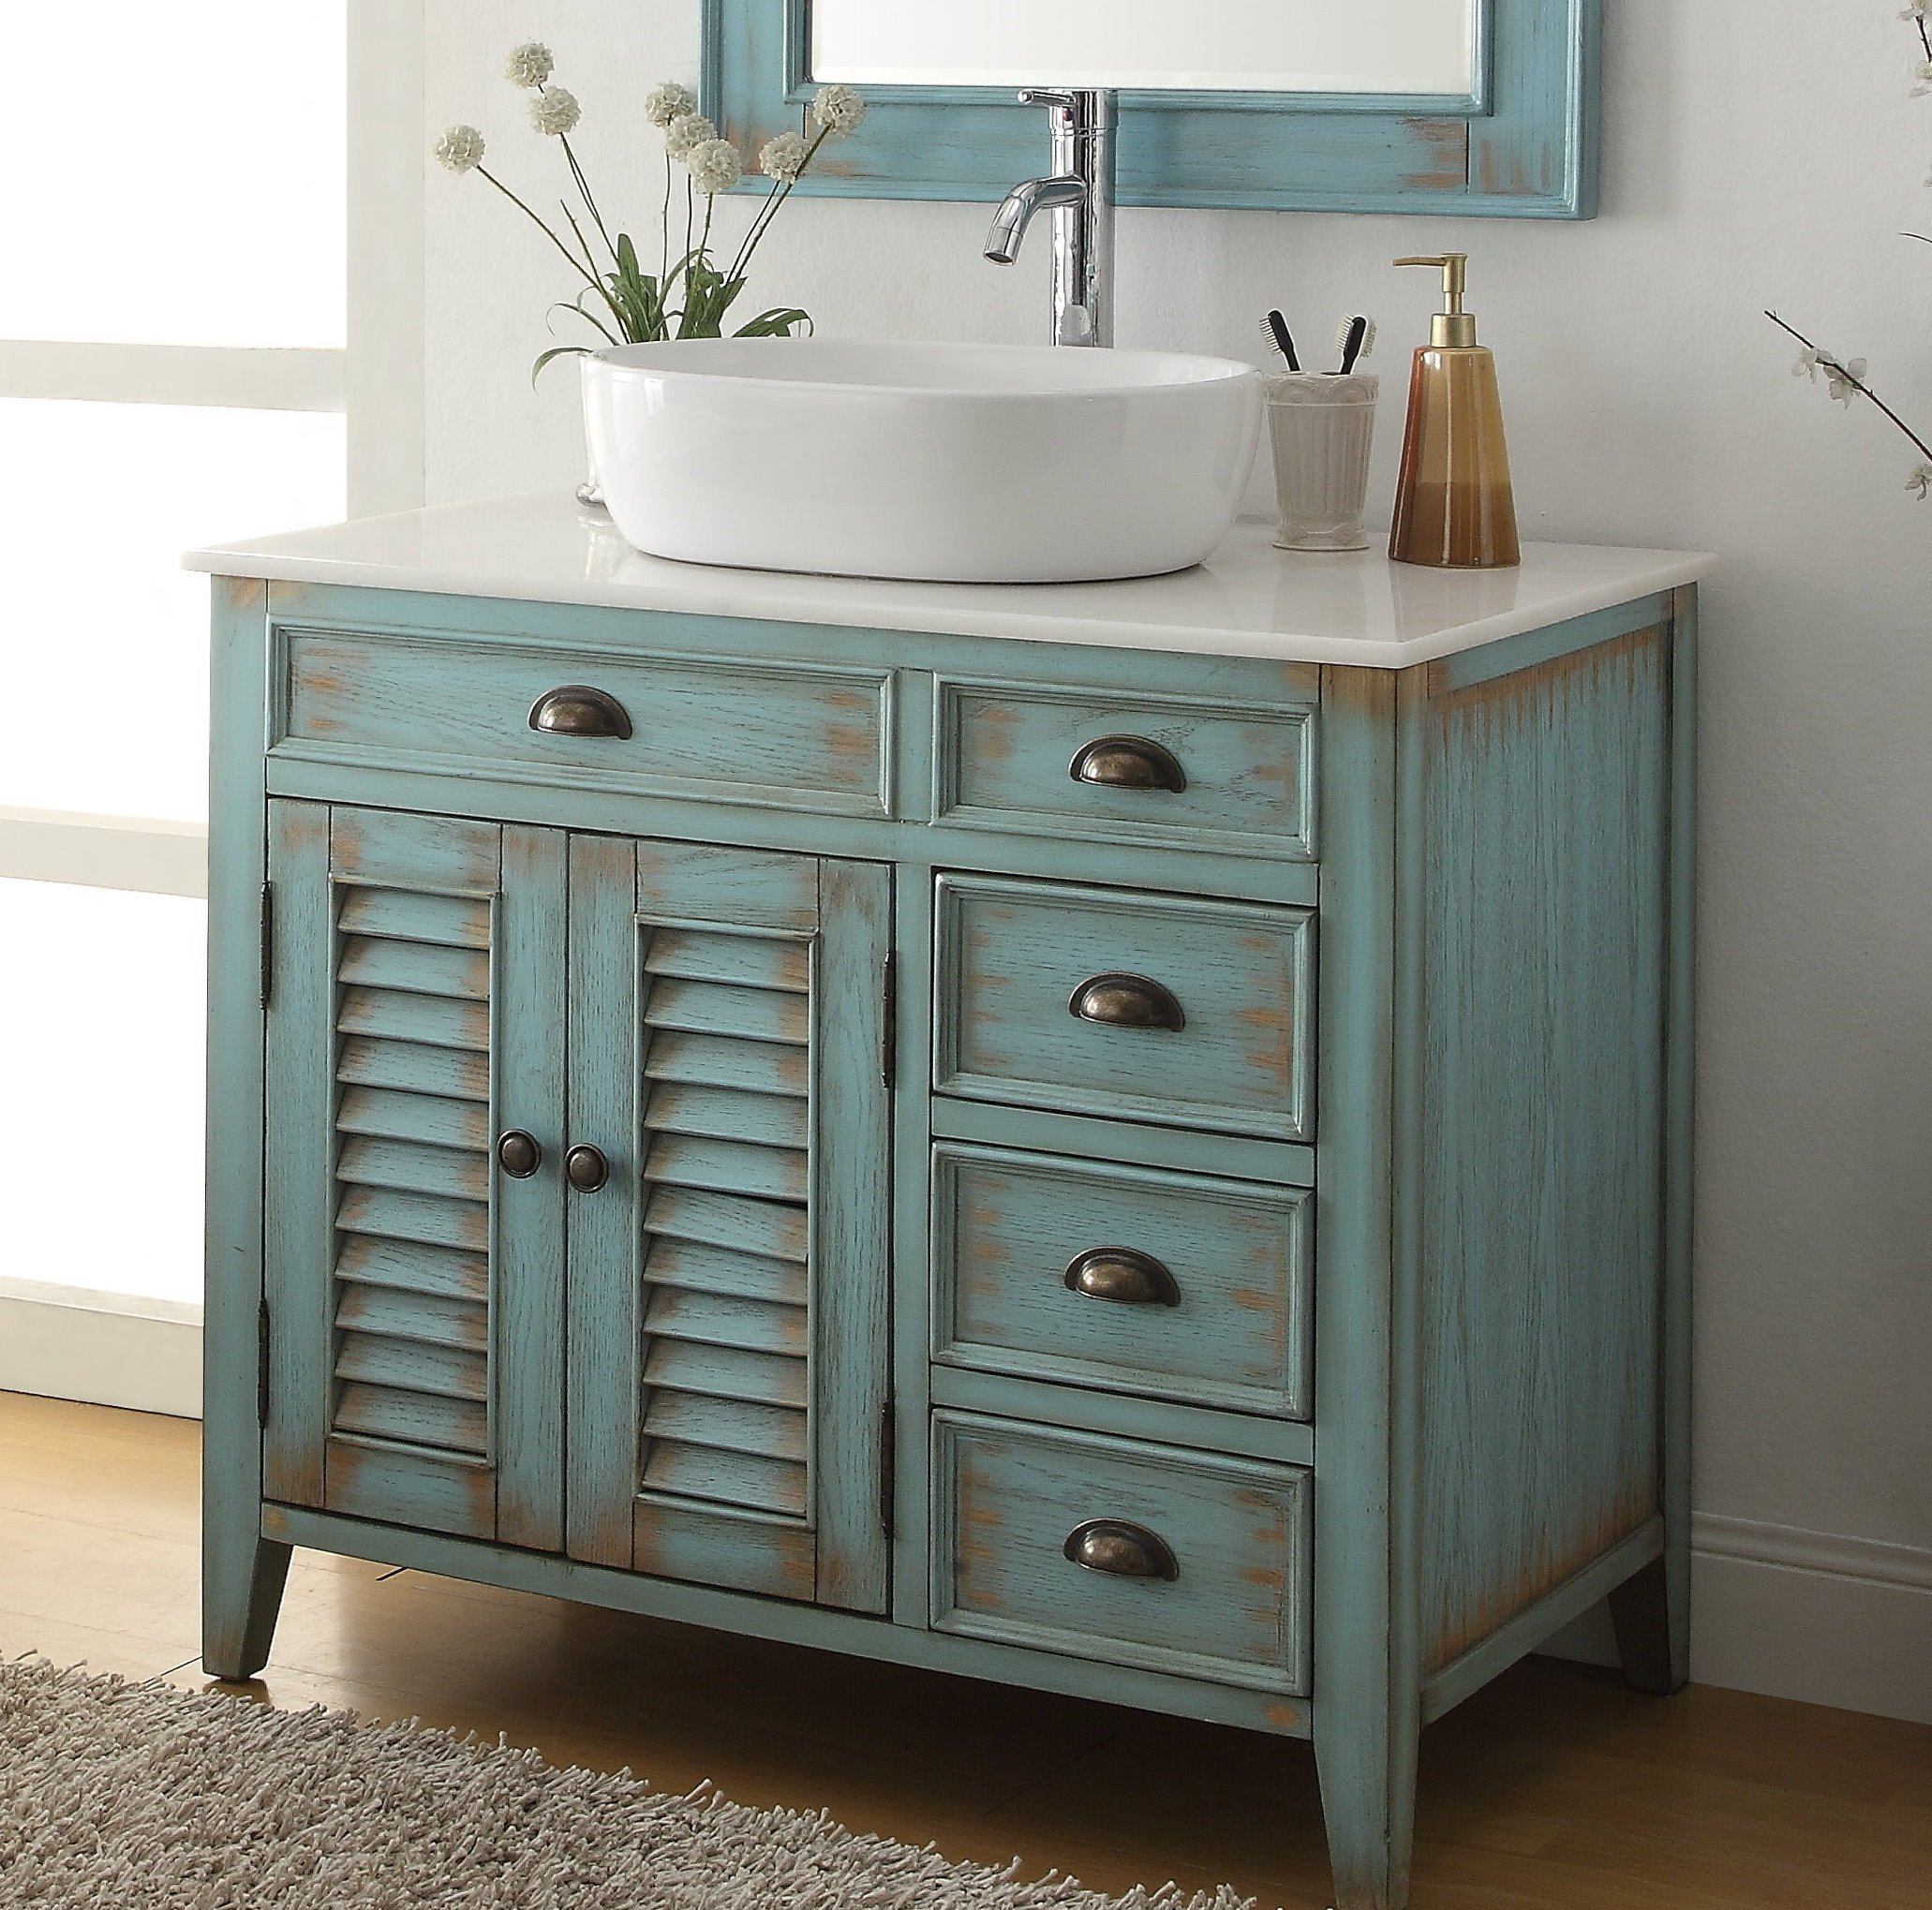 Chans Furniture Cf 78886bu 38 Inch Benton Collection Distress Blue Abbeville Vessel Sink Bathroom Vanity